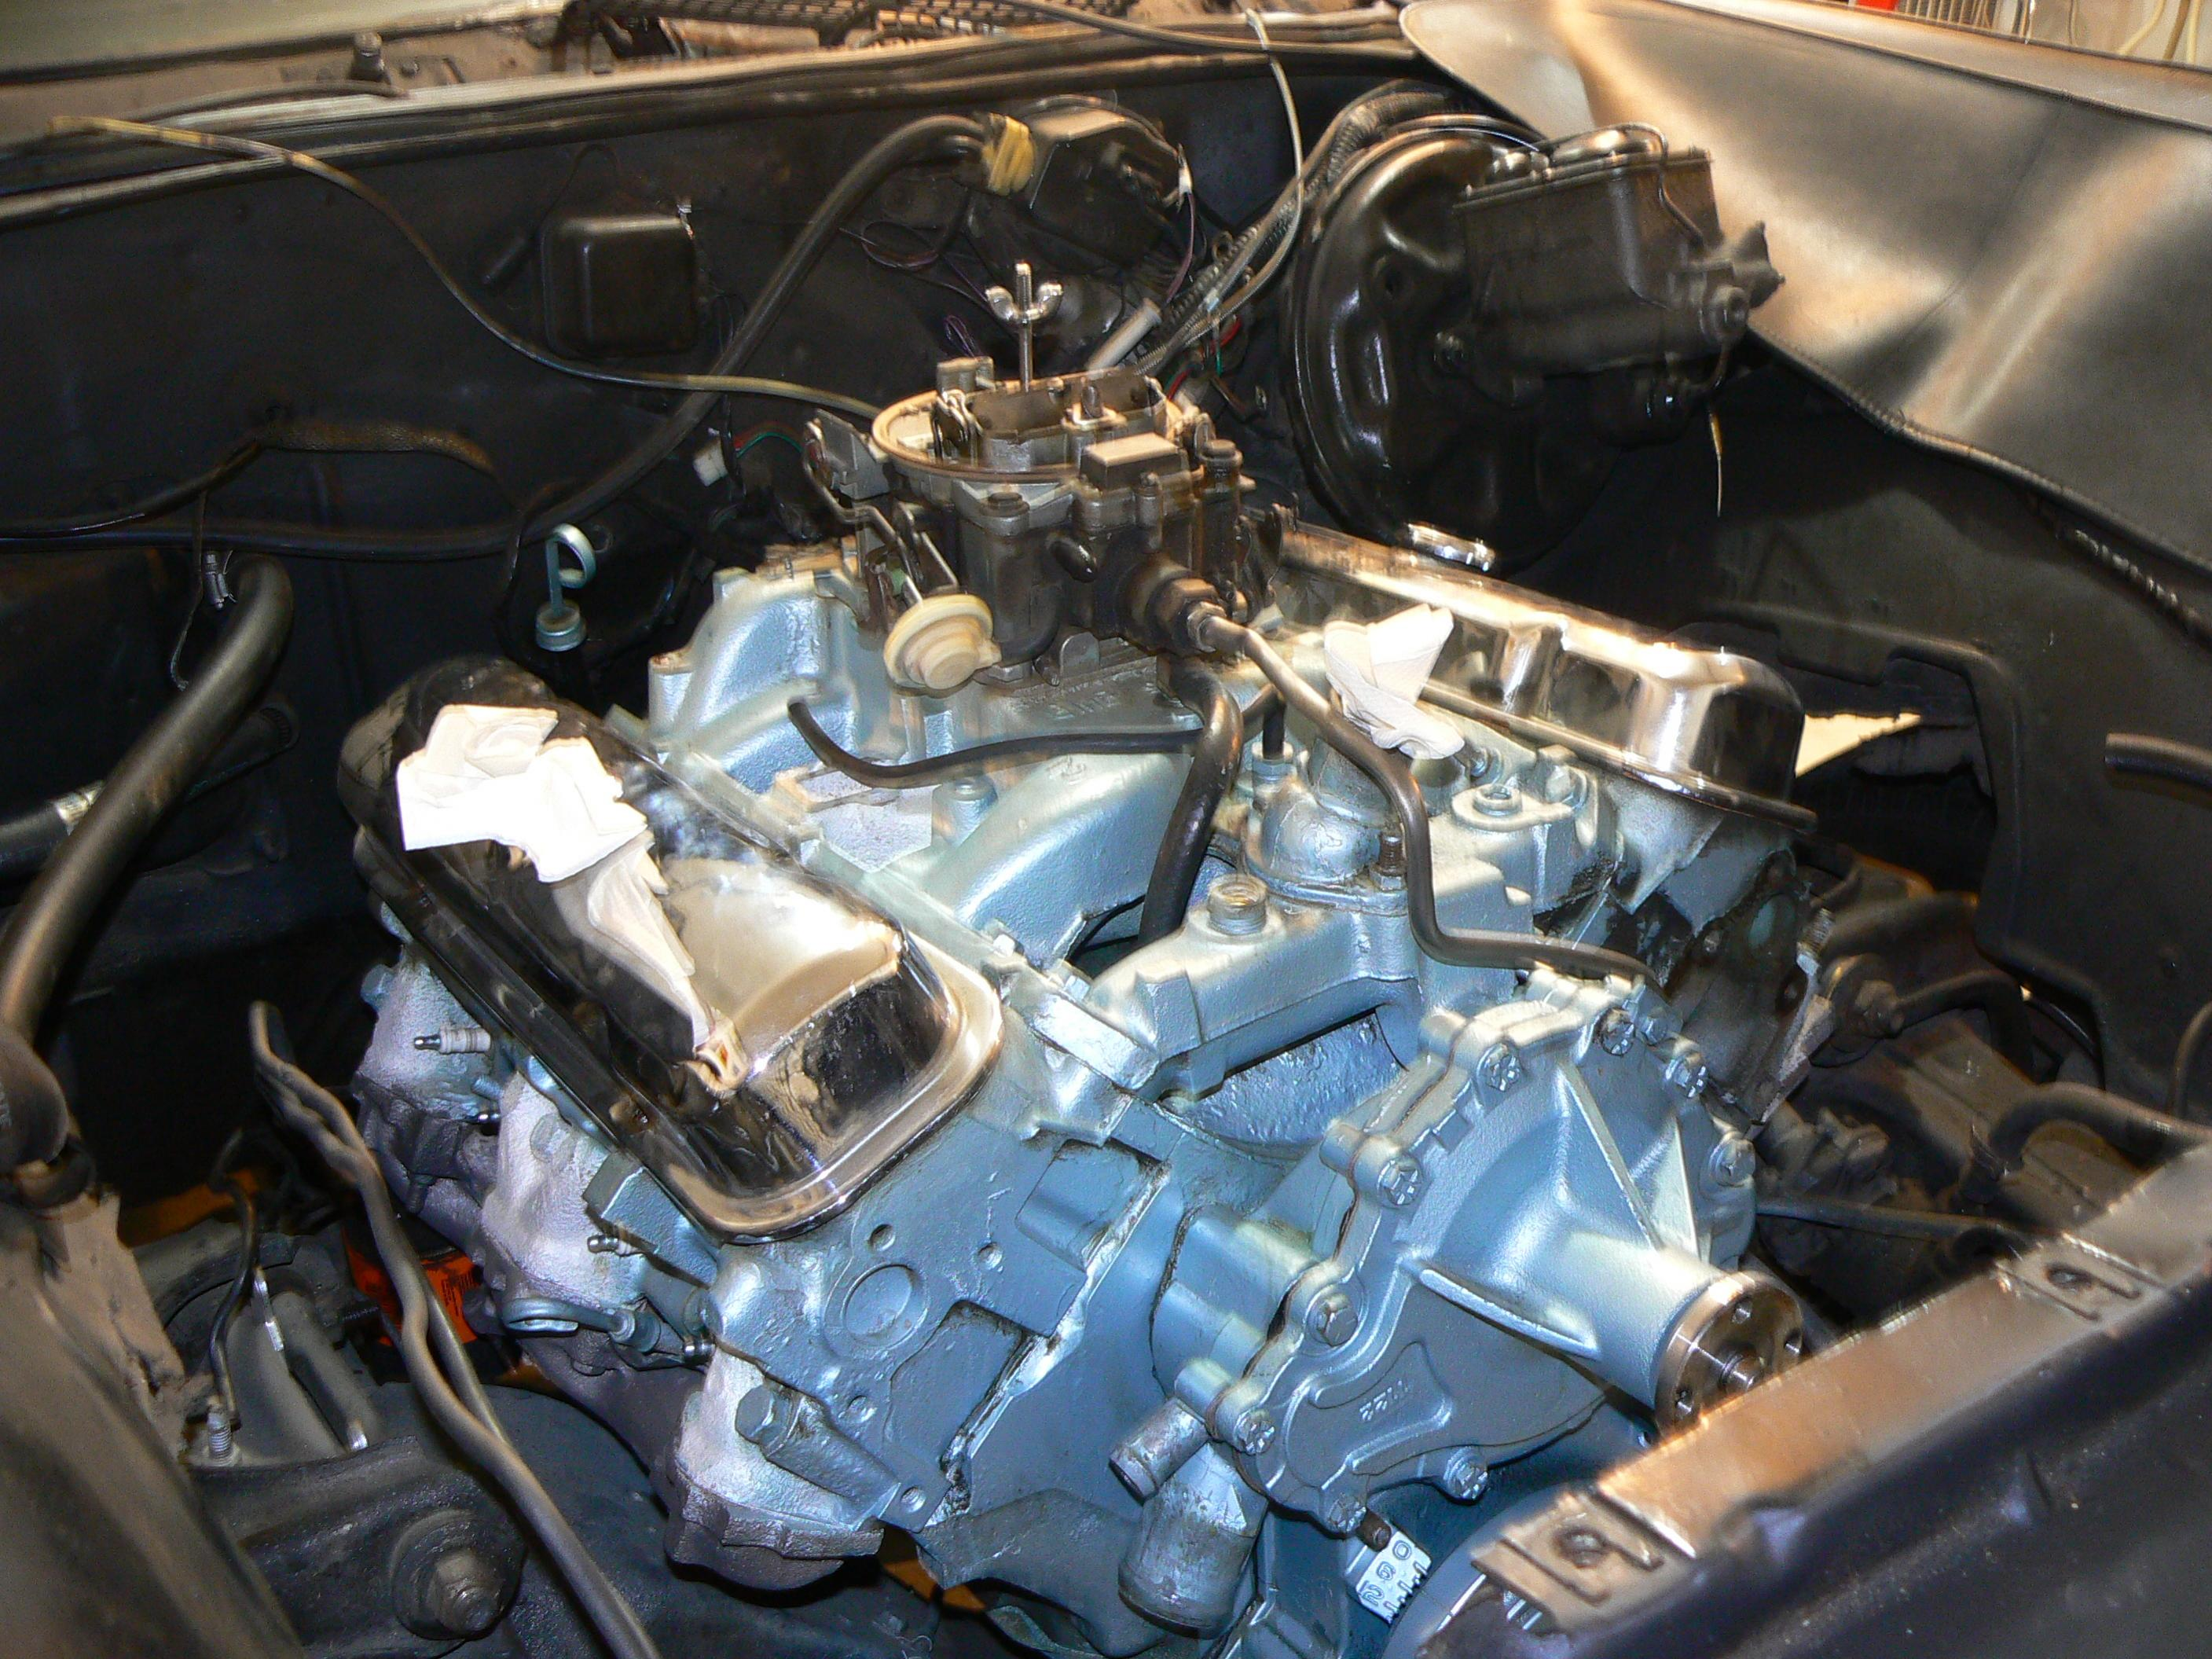 67 GTO engine and engine compartment paint-p1020777.jpg